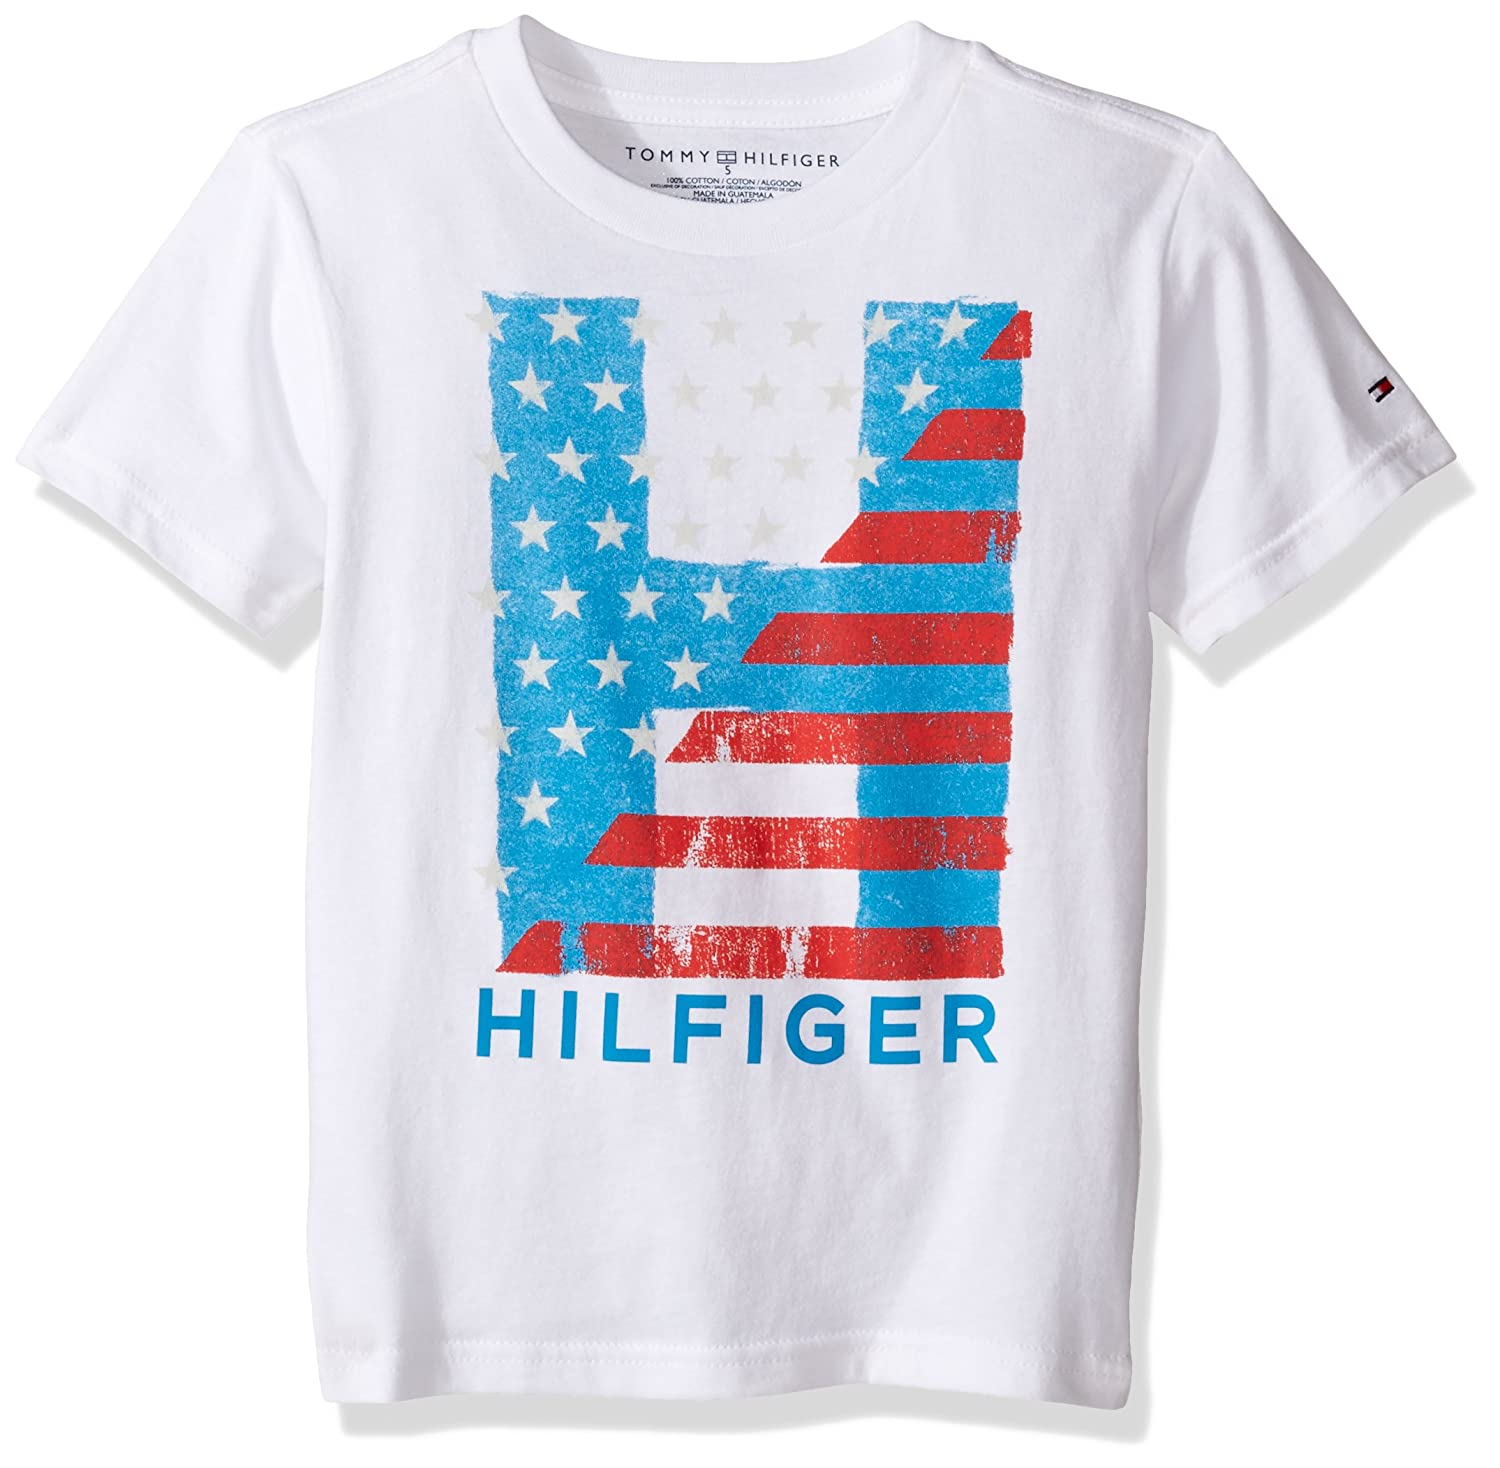 fbe6fb604 Amazon.com: Tommy Hilfiger Boys' Neg Flag Tee: Clothing